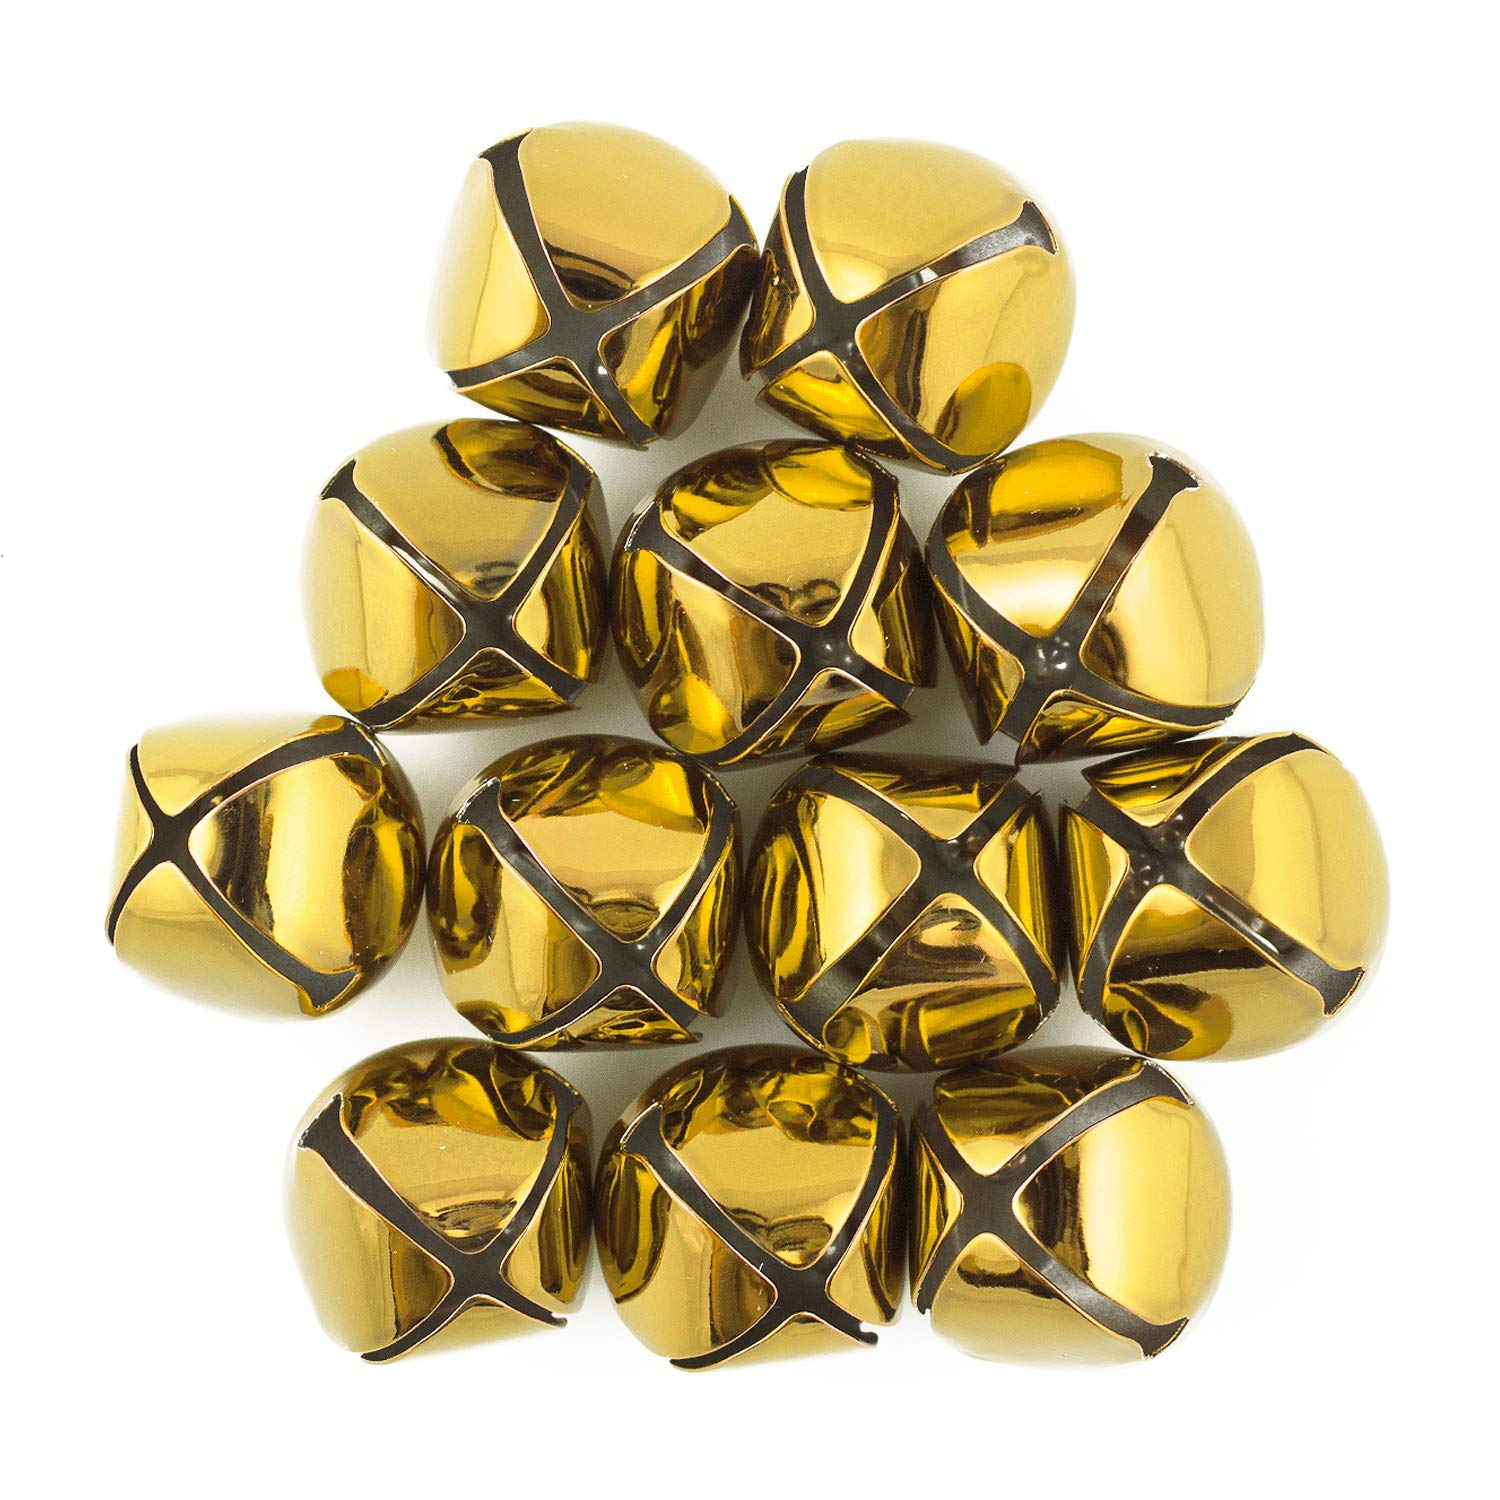 1.5 Inch 36mm Extra Large Giant Jumbo Craft Gold Jingle Bells Bulk 100 Pieces by Art Cove (Image #1)